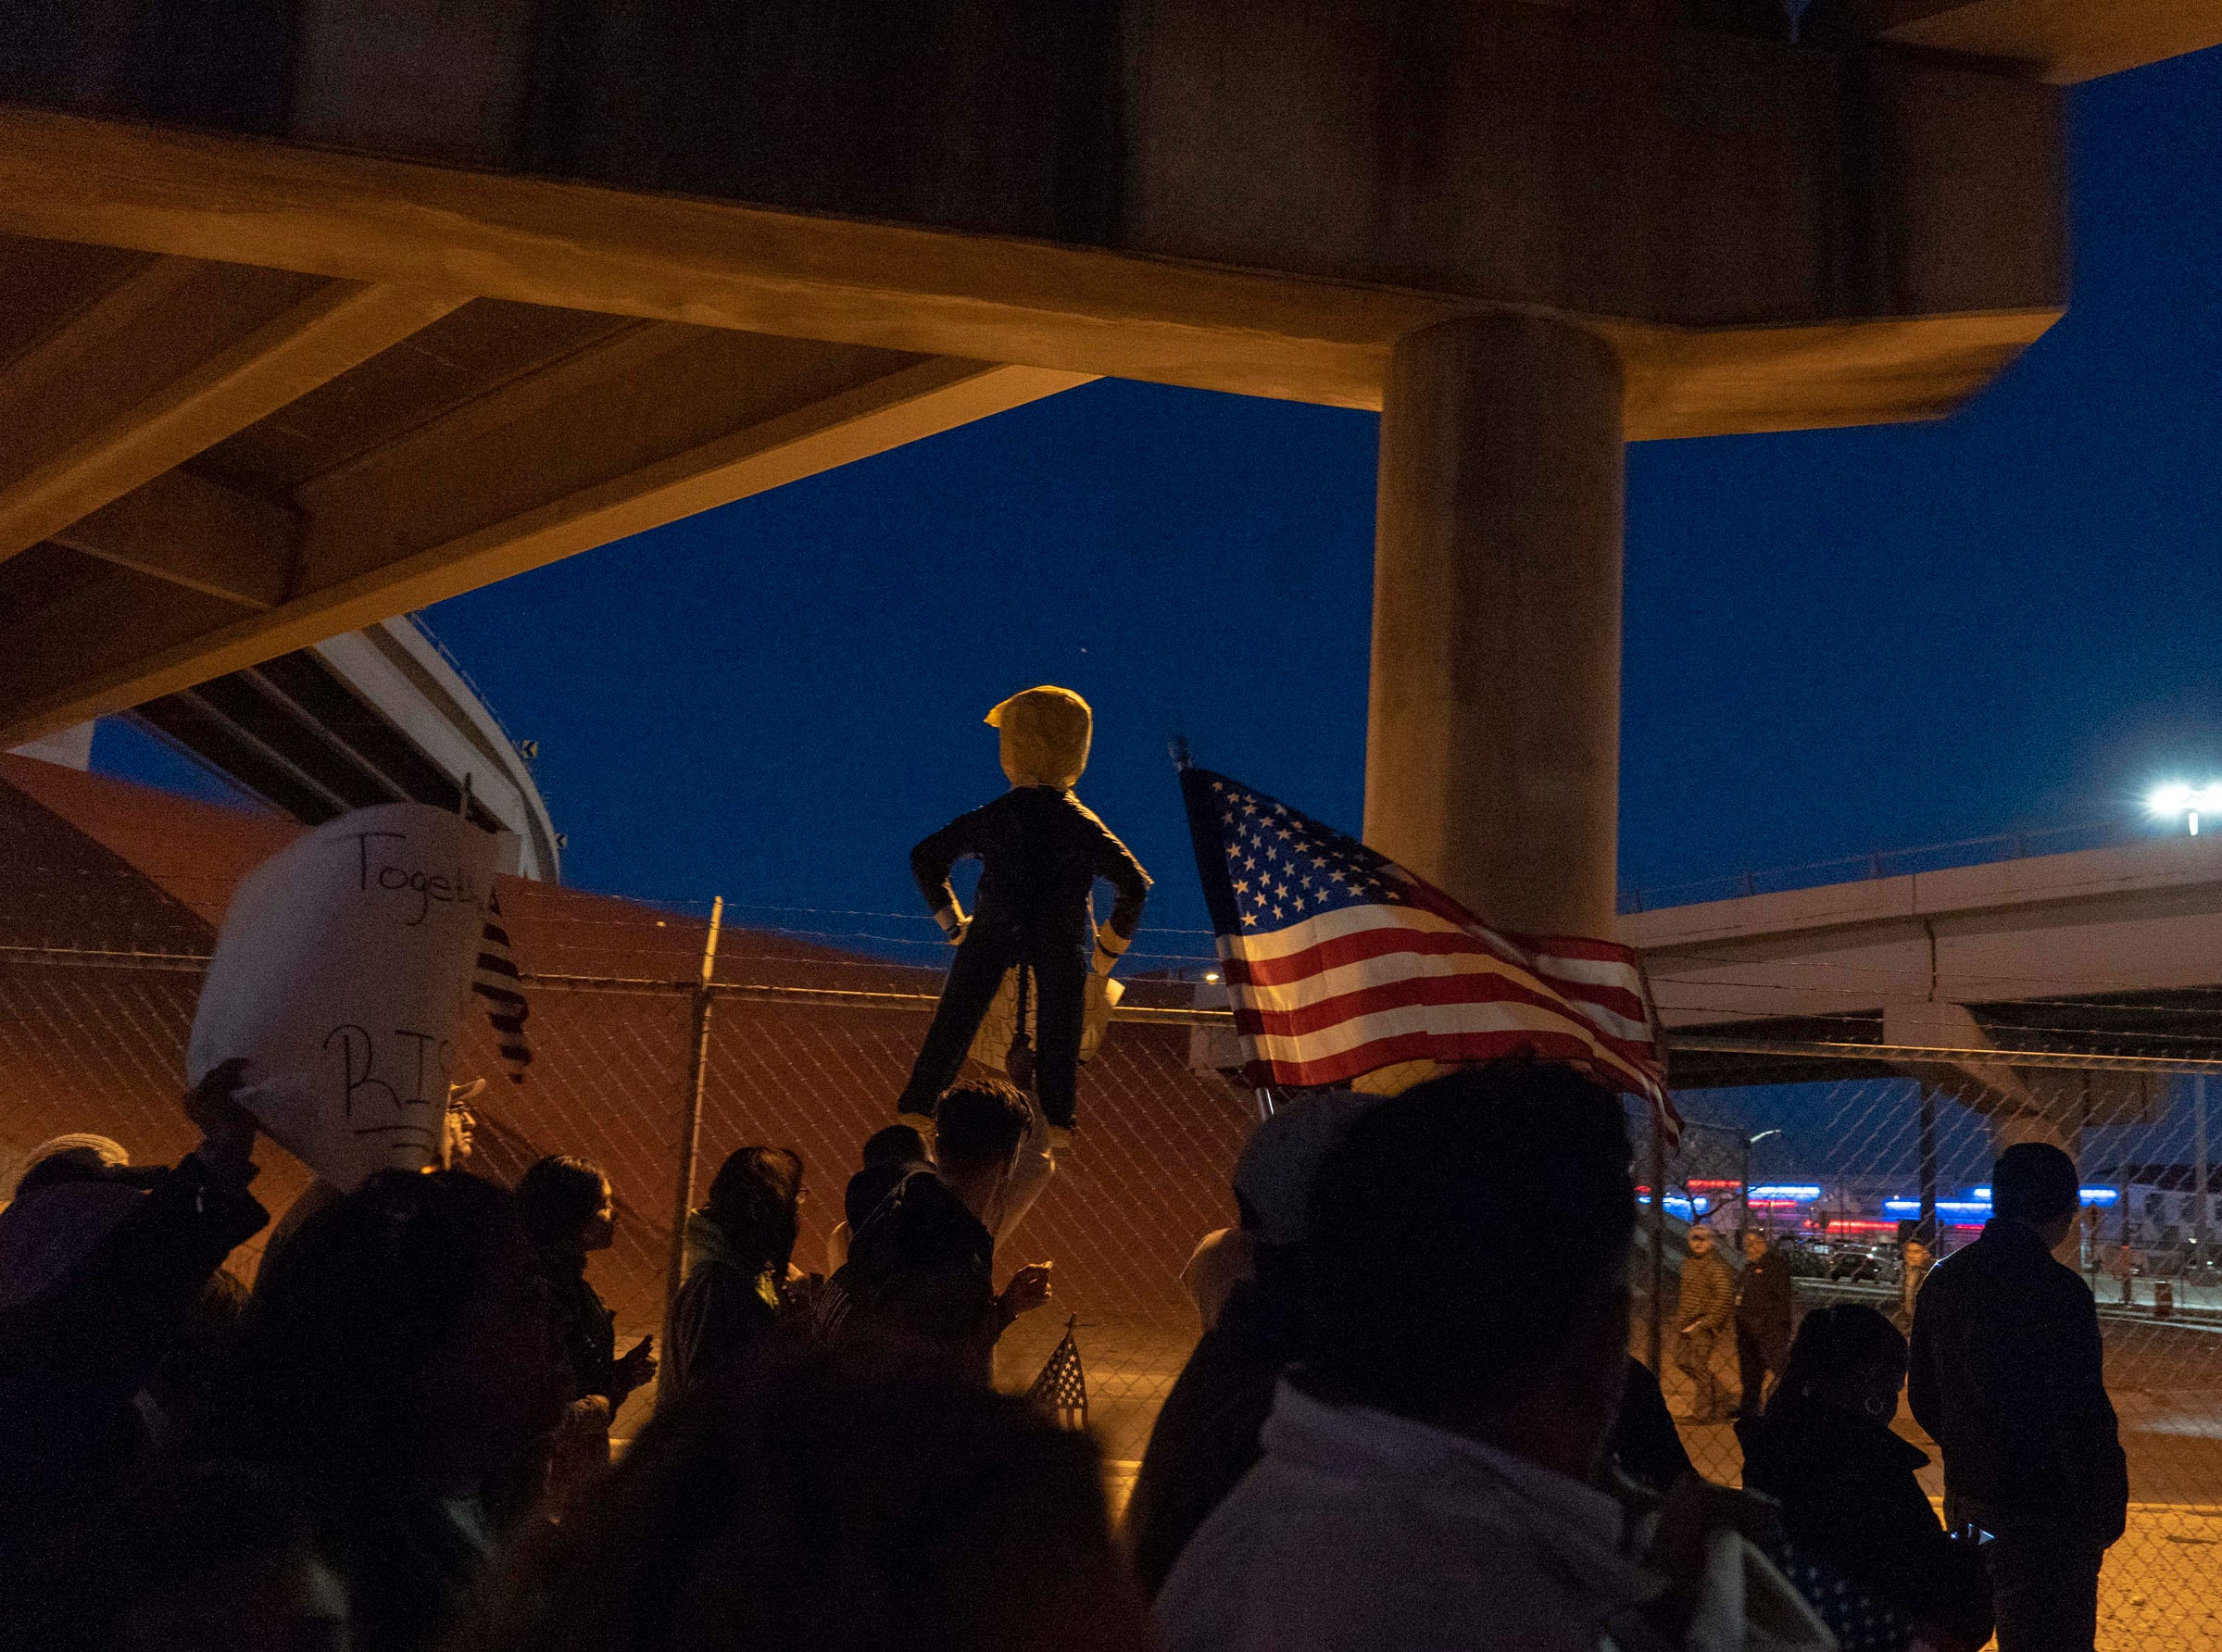 2/11/19 6:23:07 PM -- El Paso, TX, U.S.A  -- Hundreds joined the March for Truth along with Border Network for Human Rights, Women's March, to protest against President Trump campaign rally near El Paso County Coliseum on Feb. 11, 2019.